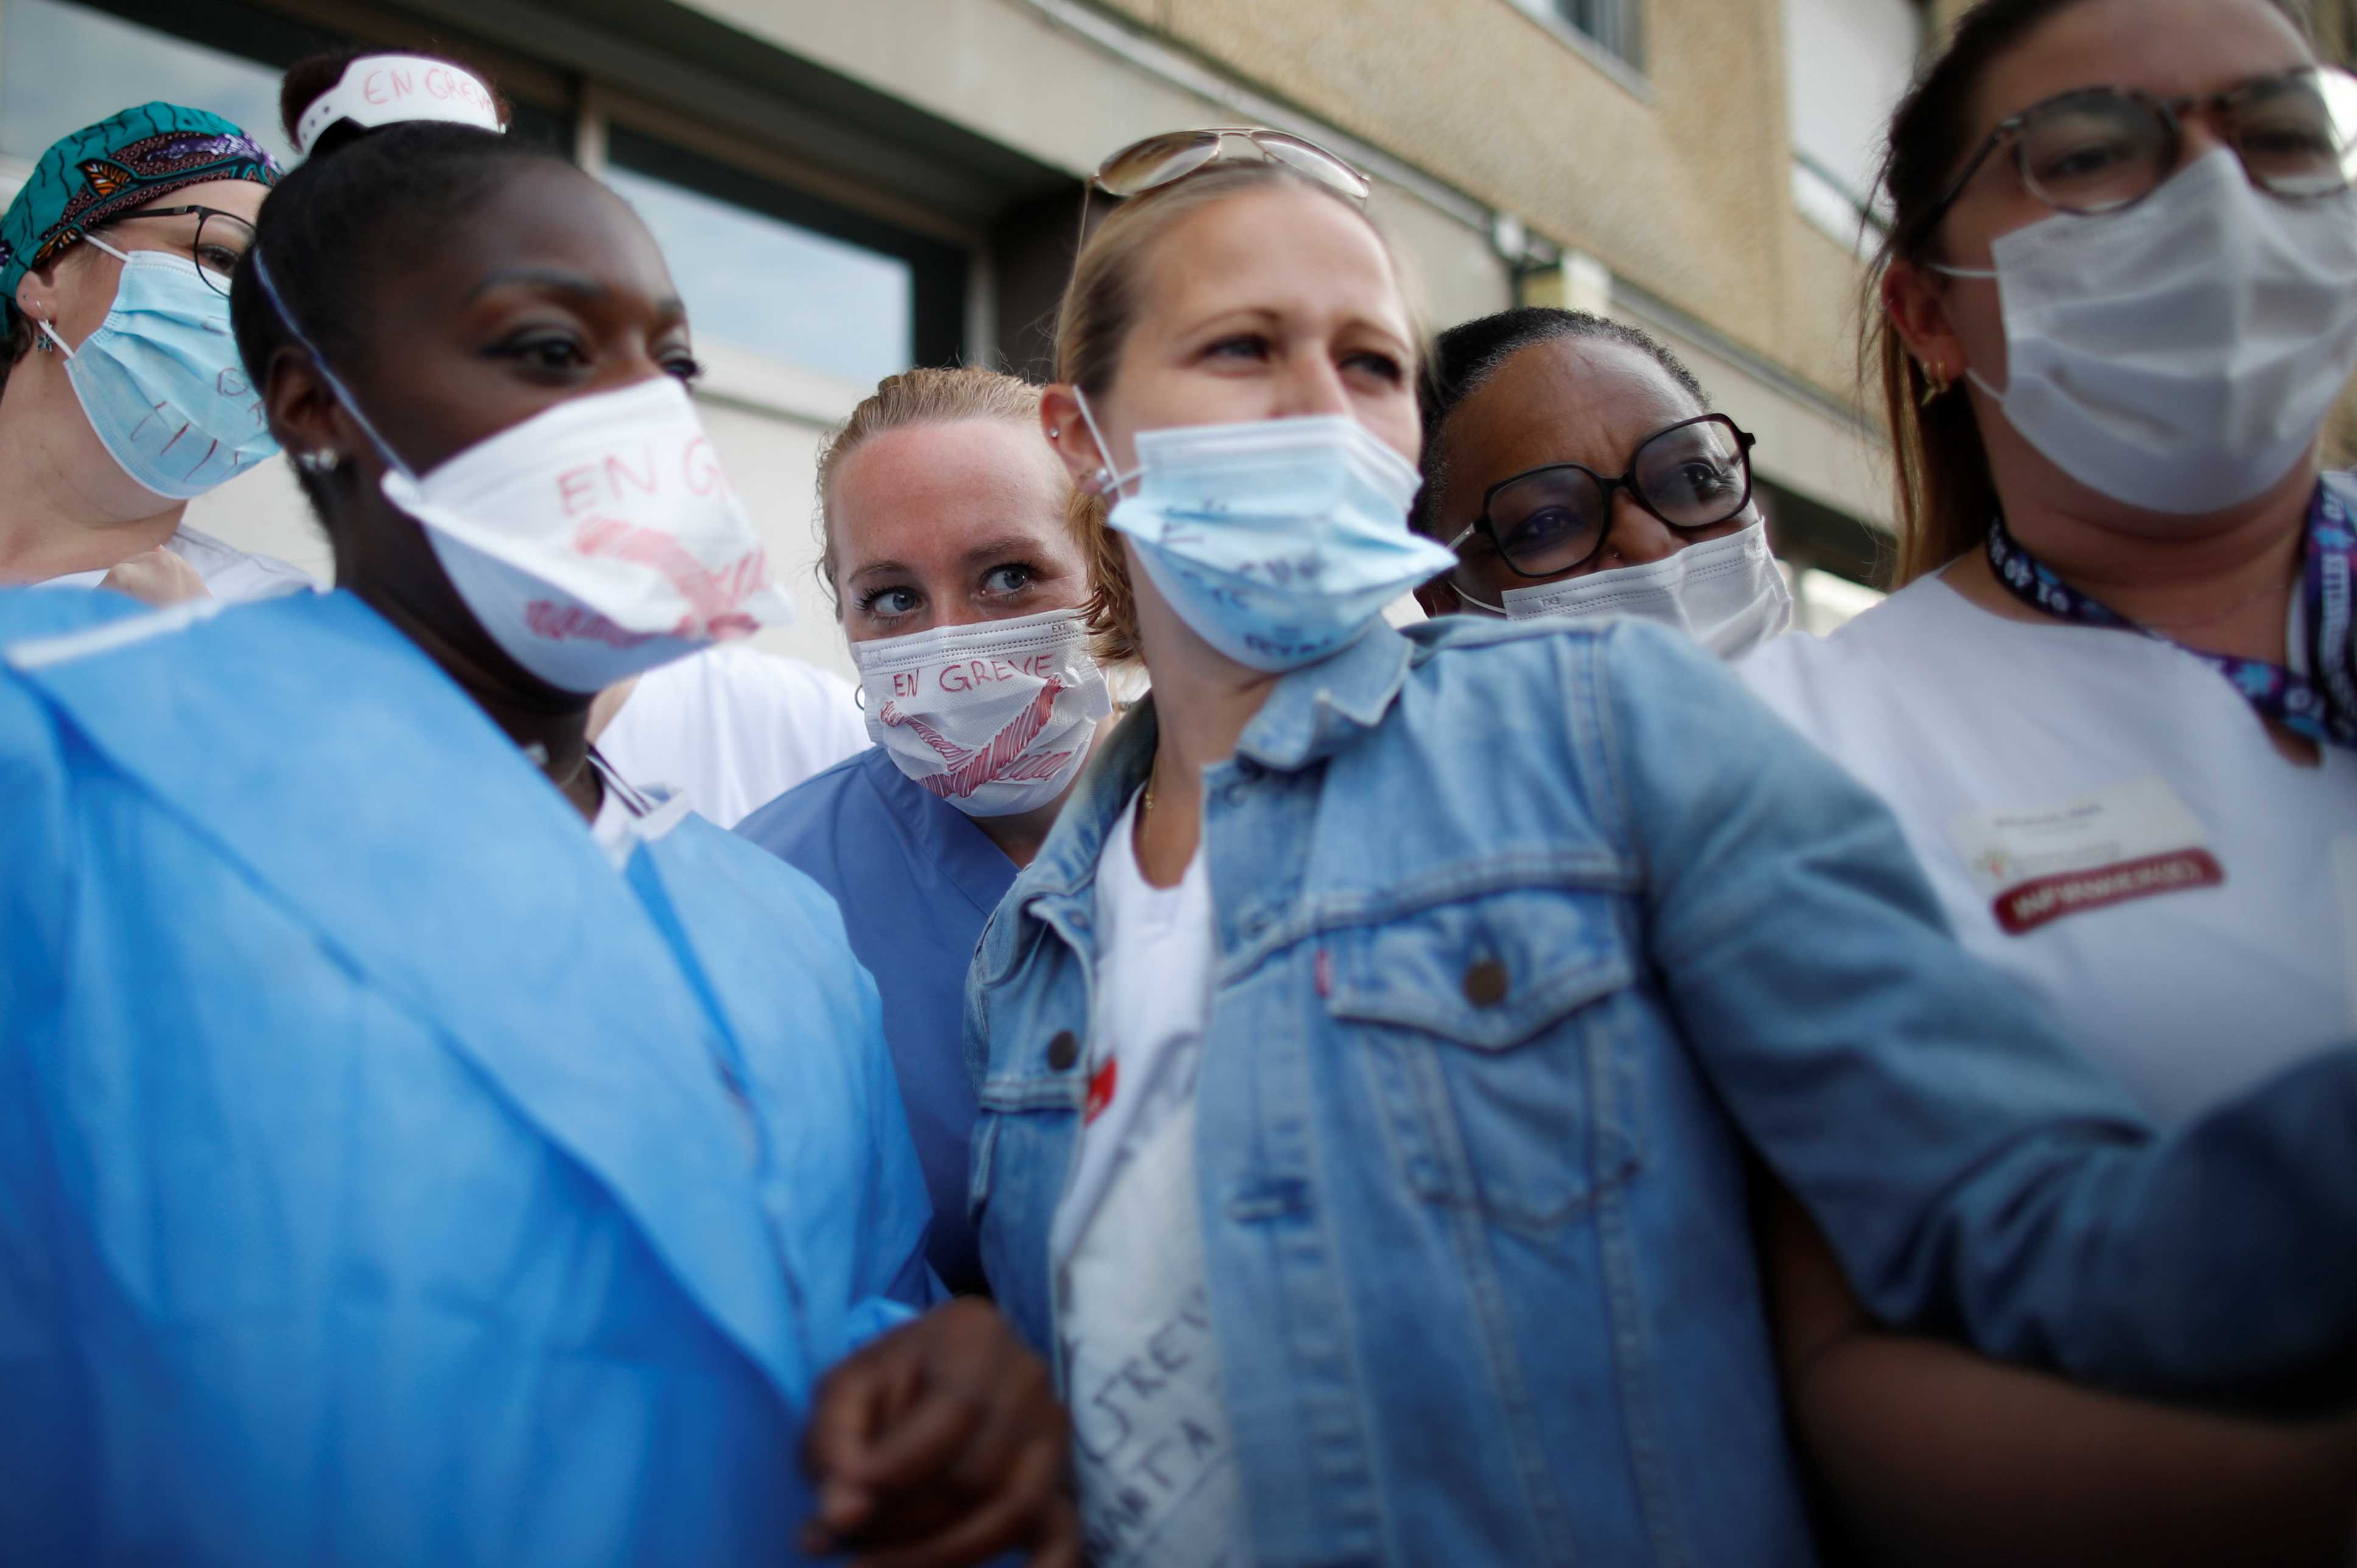 Nurses of the Intensive Care Unit (ICU) on strike gather in front of the Robert Ballanger hospital in Aulnay-sous-Bois near Paris during a national strike to demand better recognition of their work and salary increases amid the coronavirus disease (COVID-19) outbreak in France, May 11, 2021. REUTERS/Gonzalo Fuentes